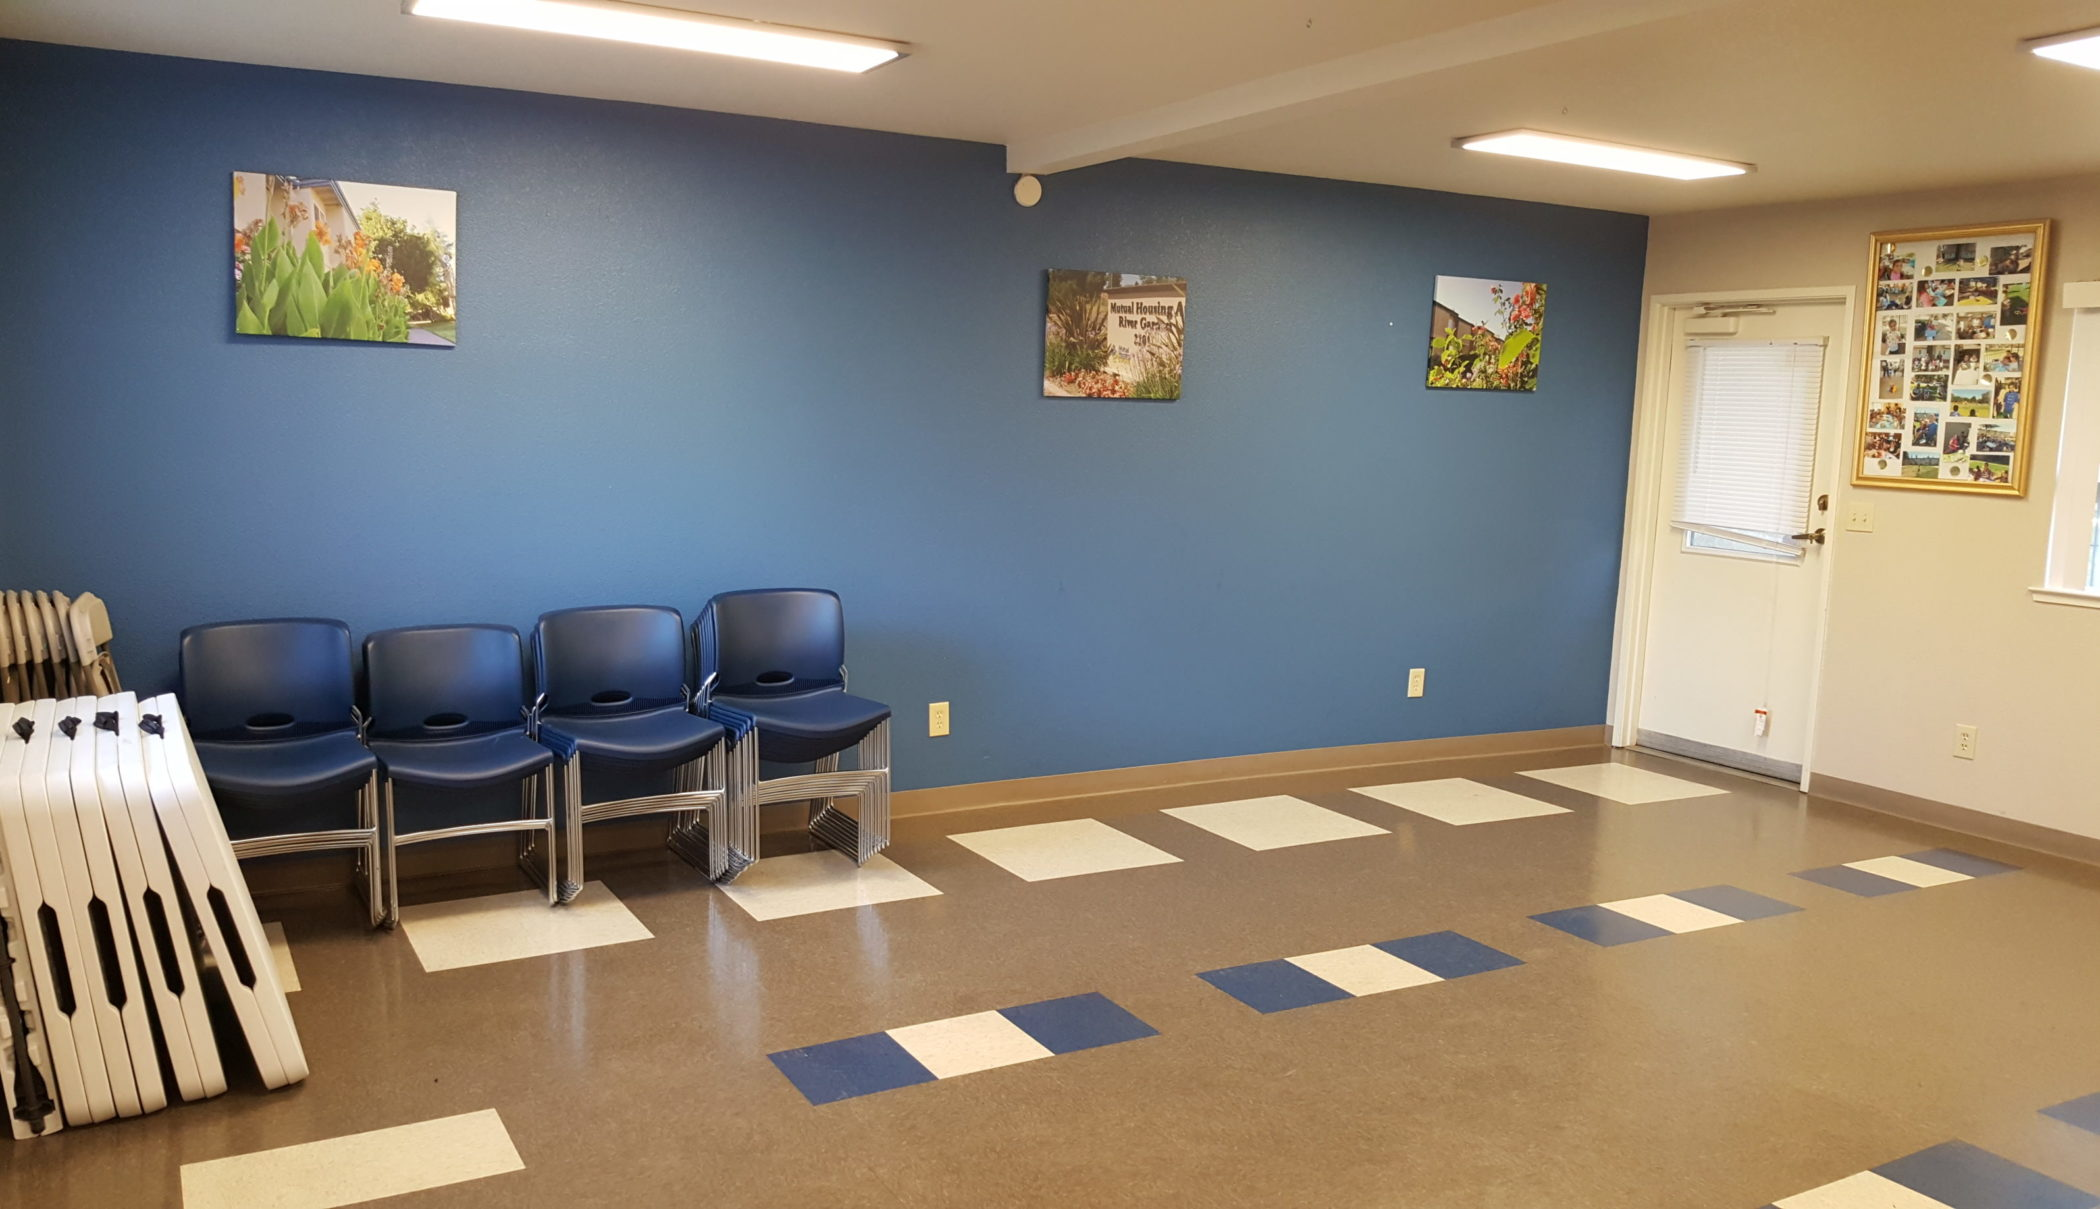 renovated community room of Mutual Housing at River Garden